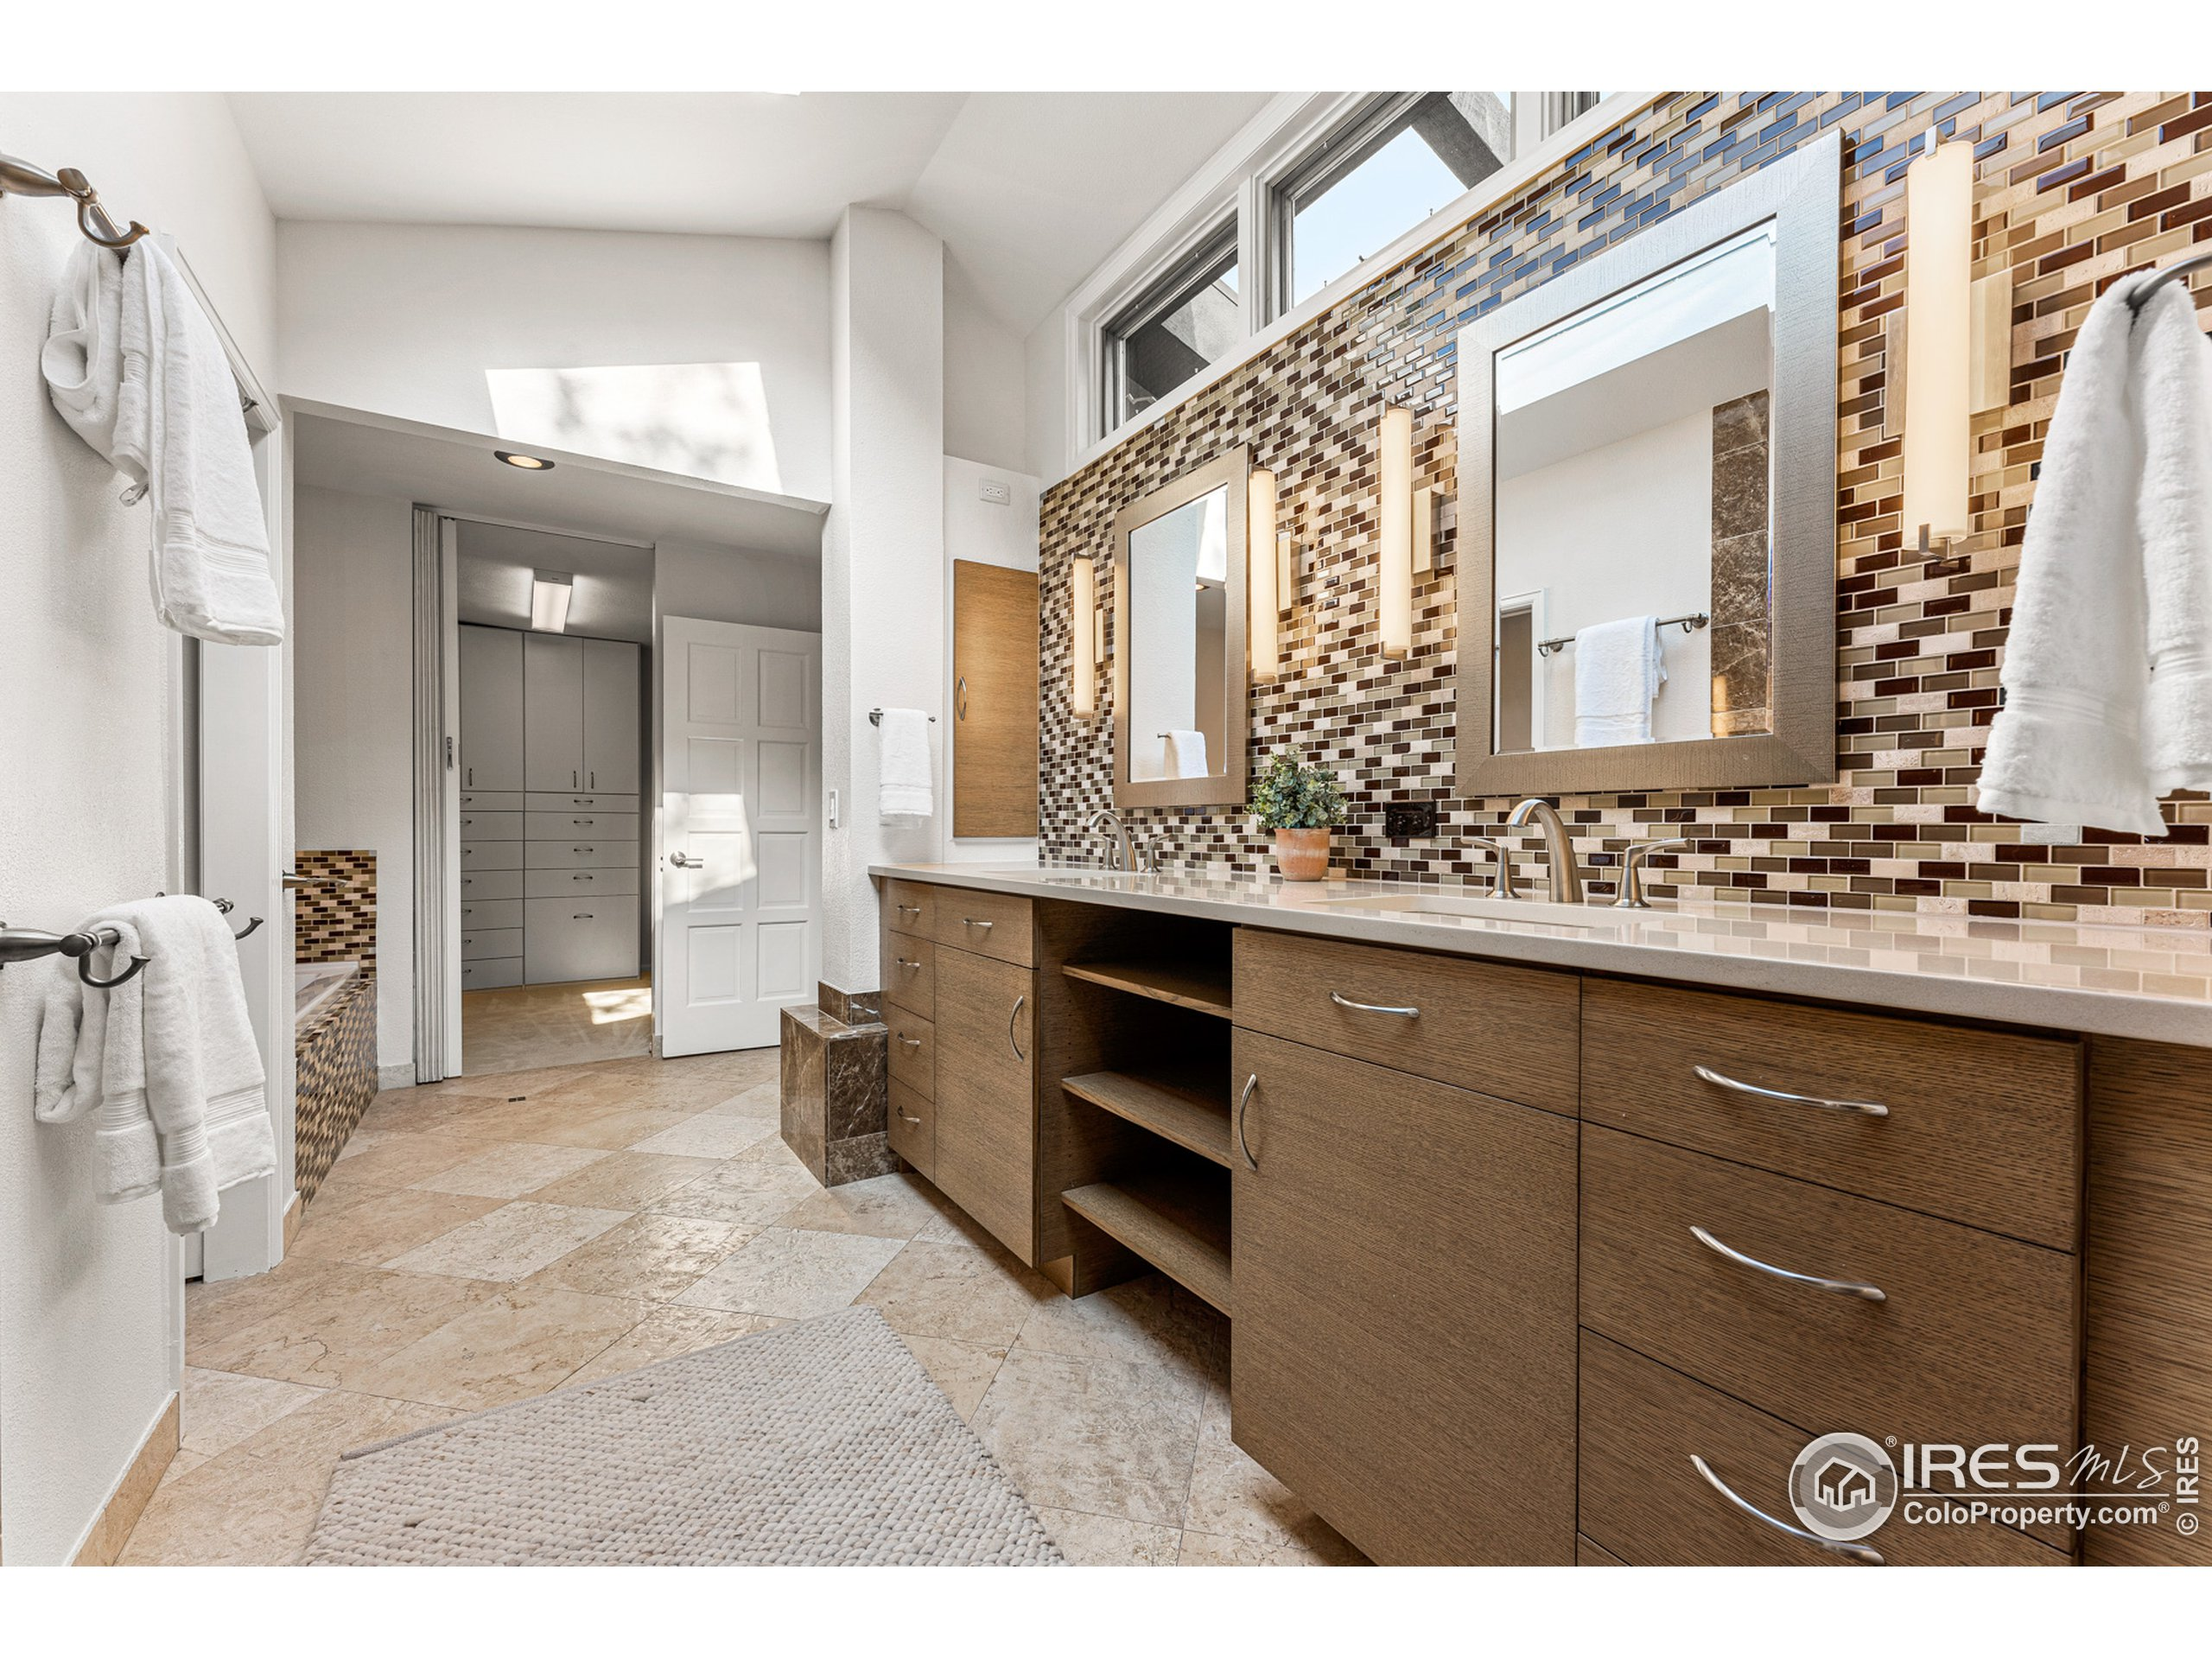 Primary suite bath (with dual sinks)